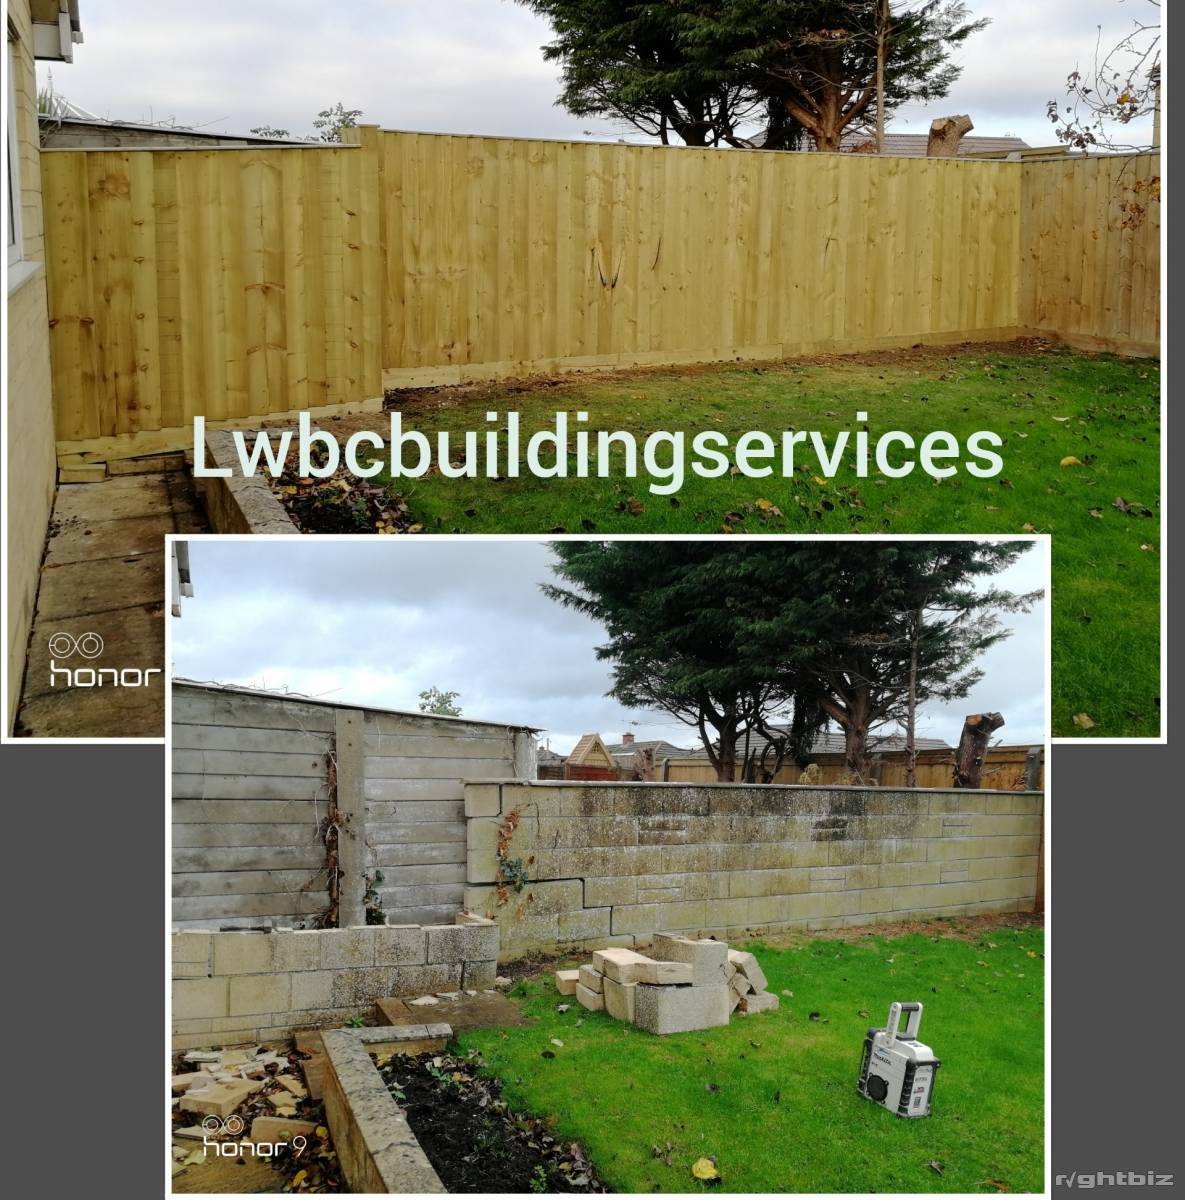 Building services company for sale, easily relocatable, great online presence. - Image 3